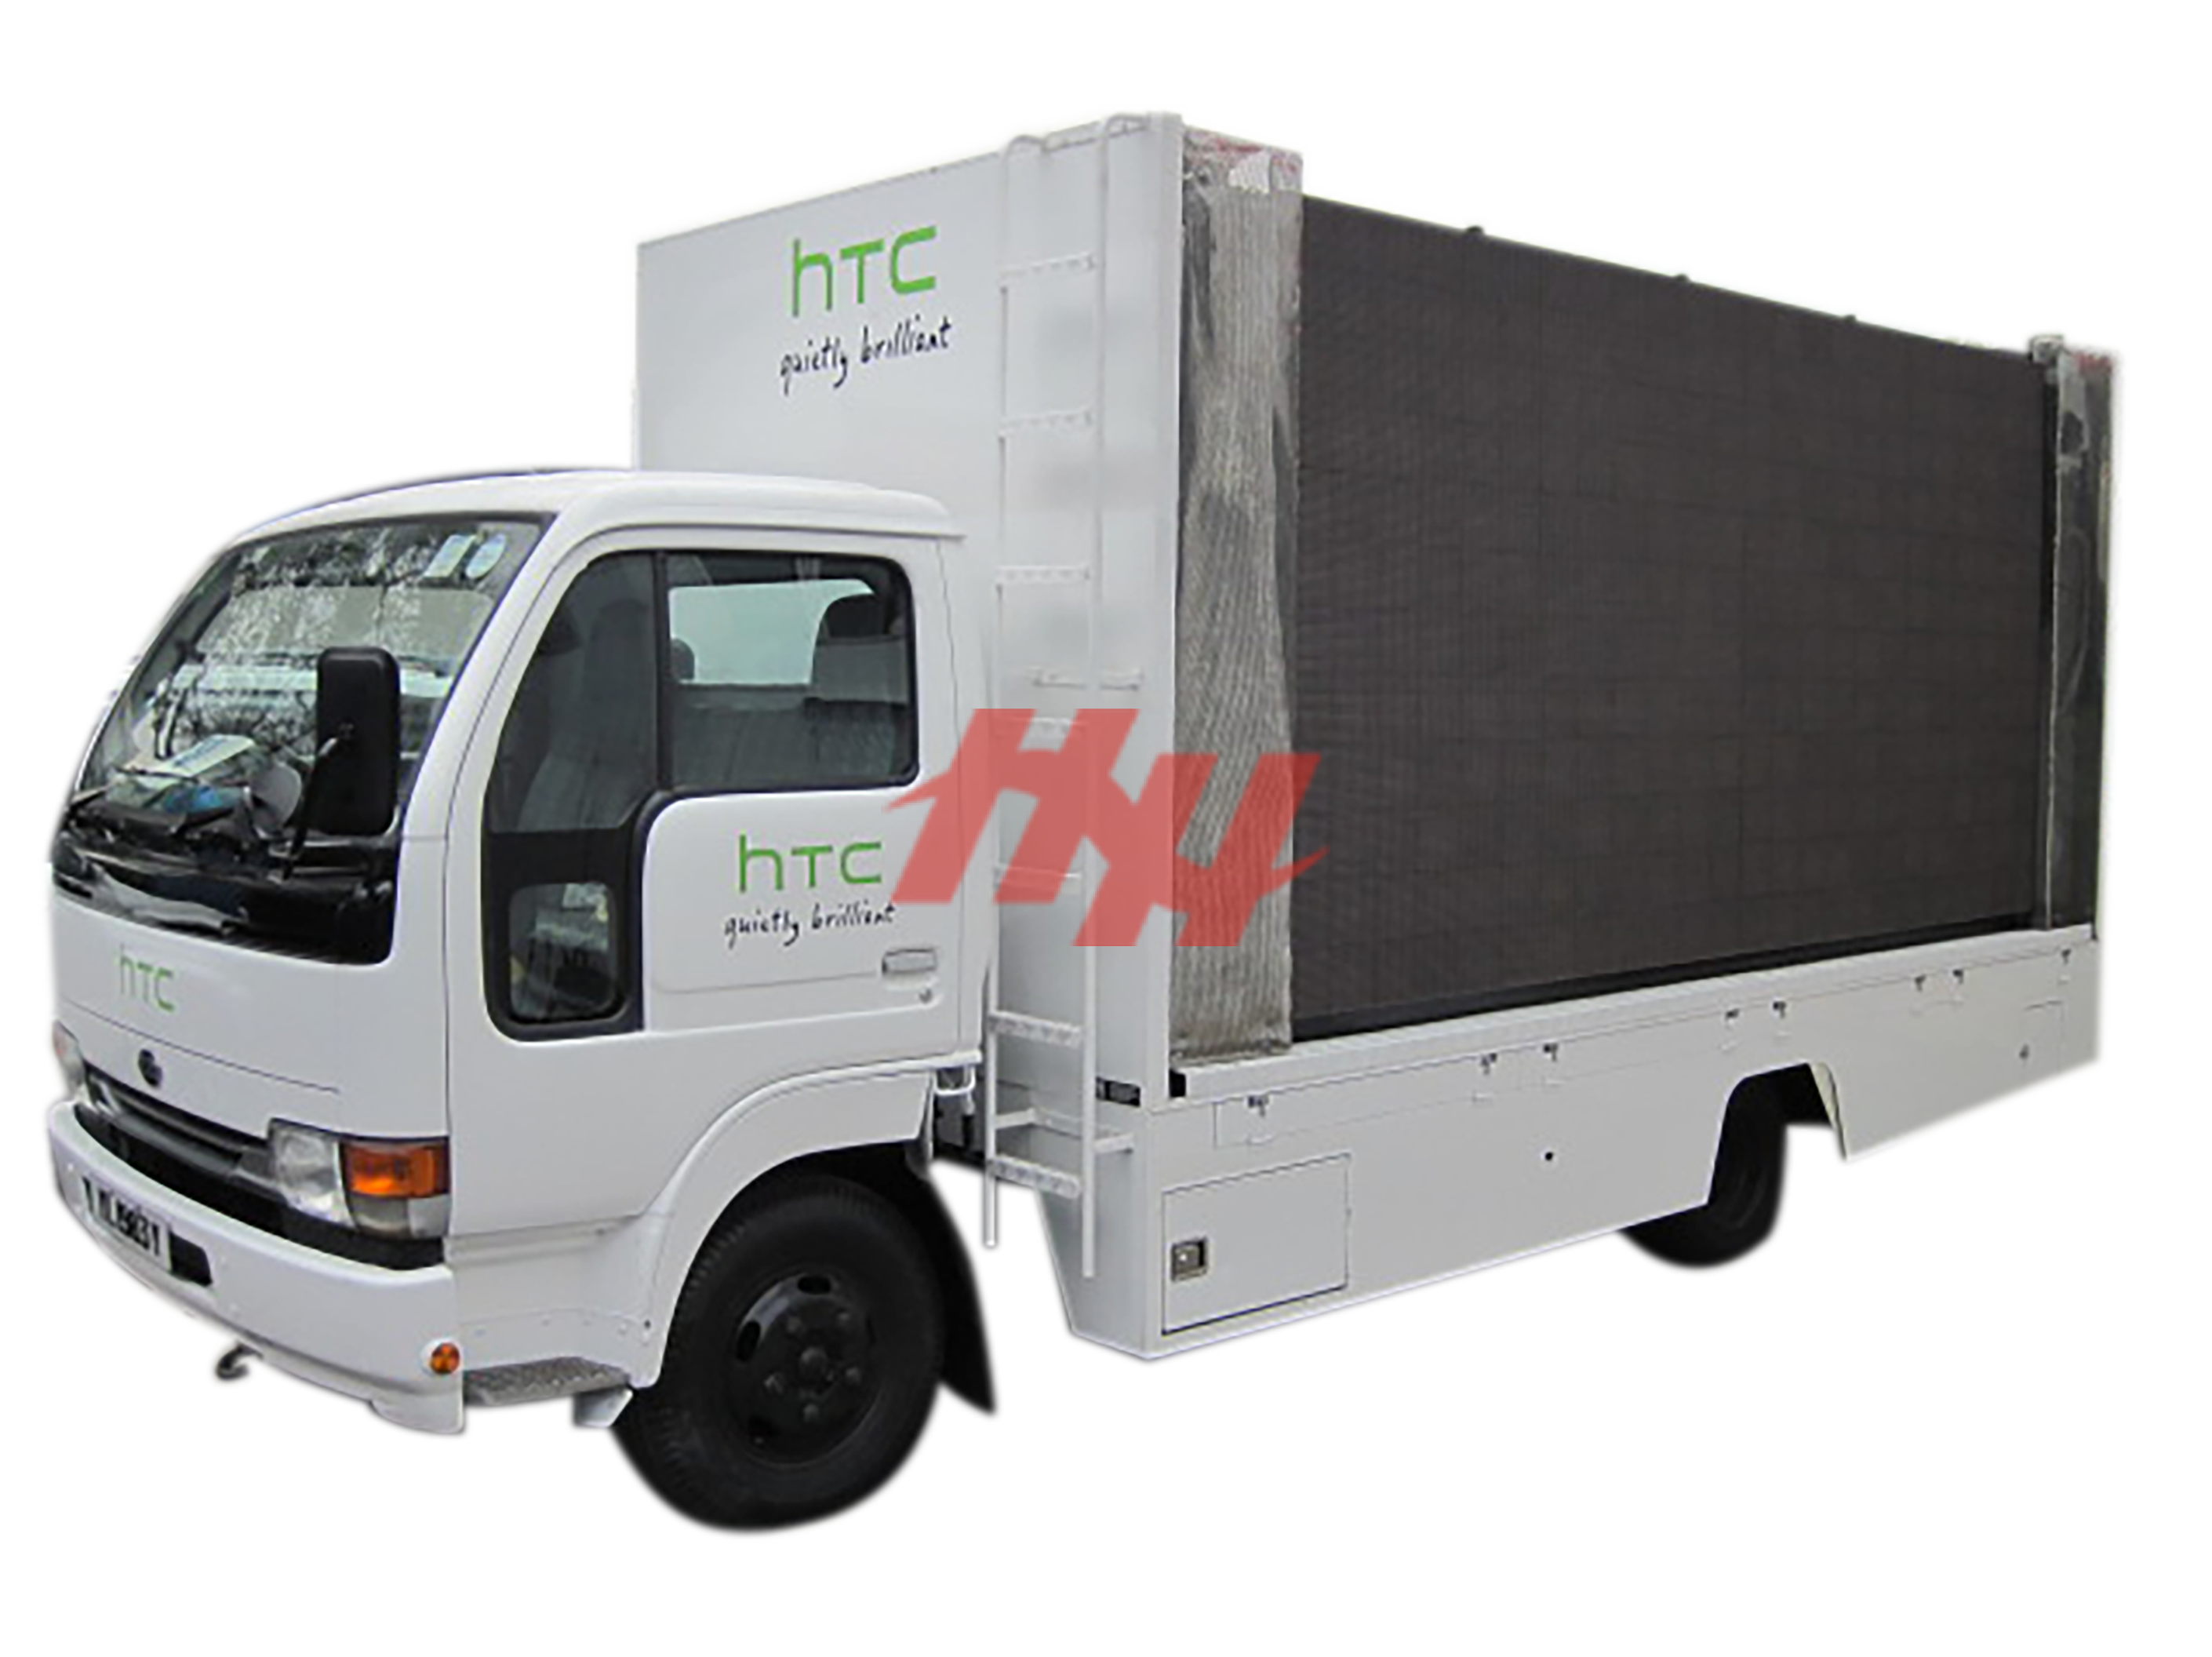 Mobile outdoor advertising led display screen edited